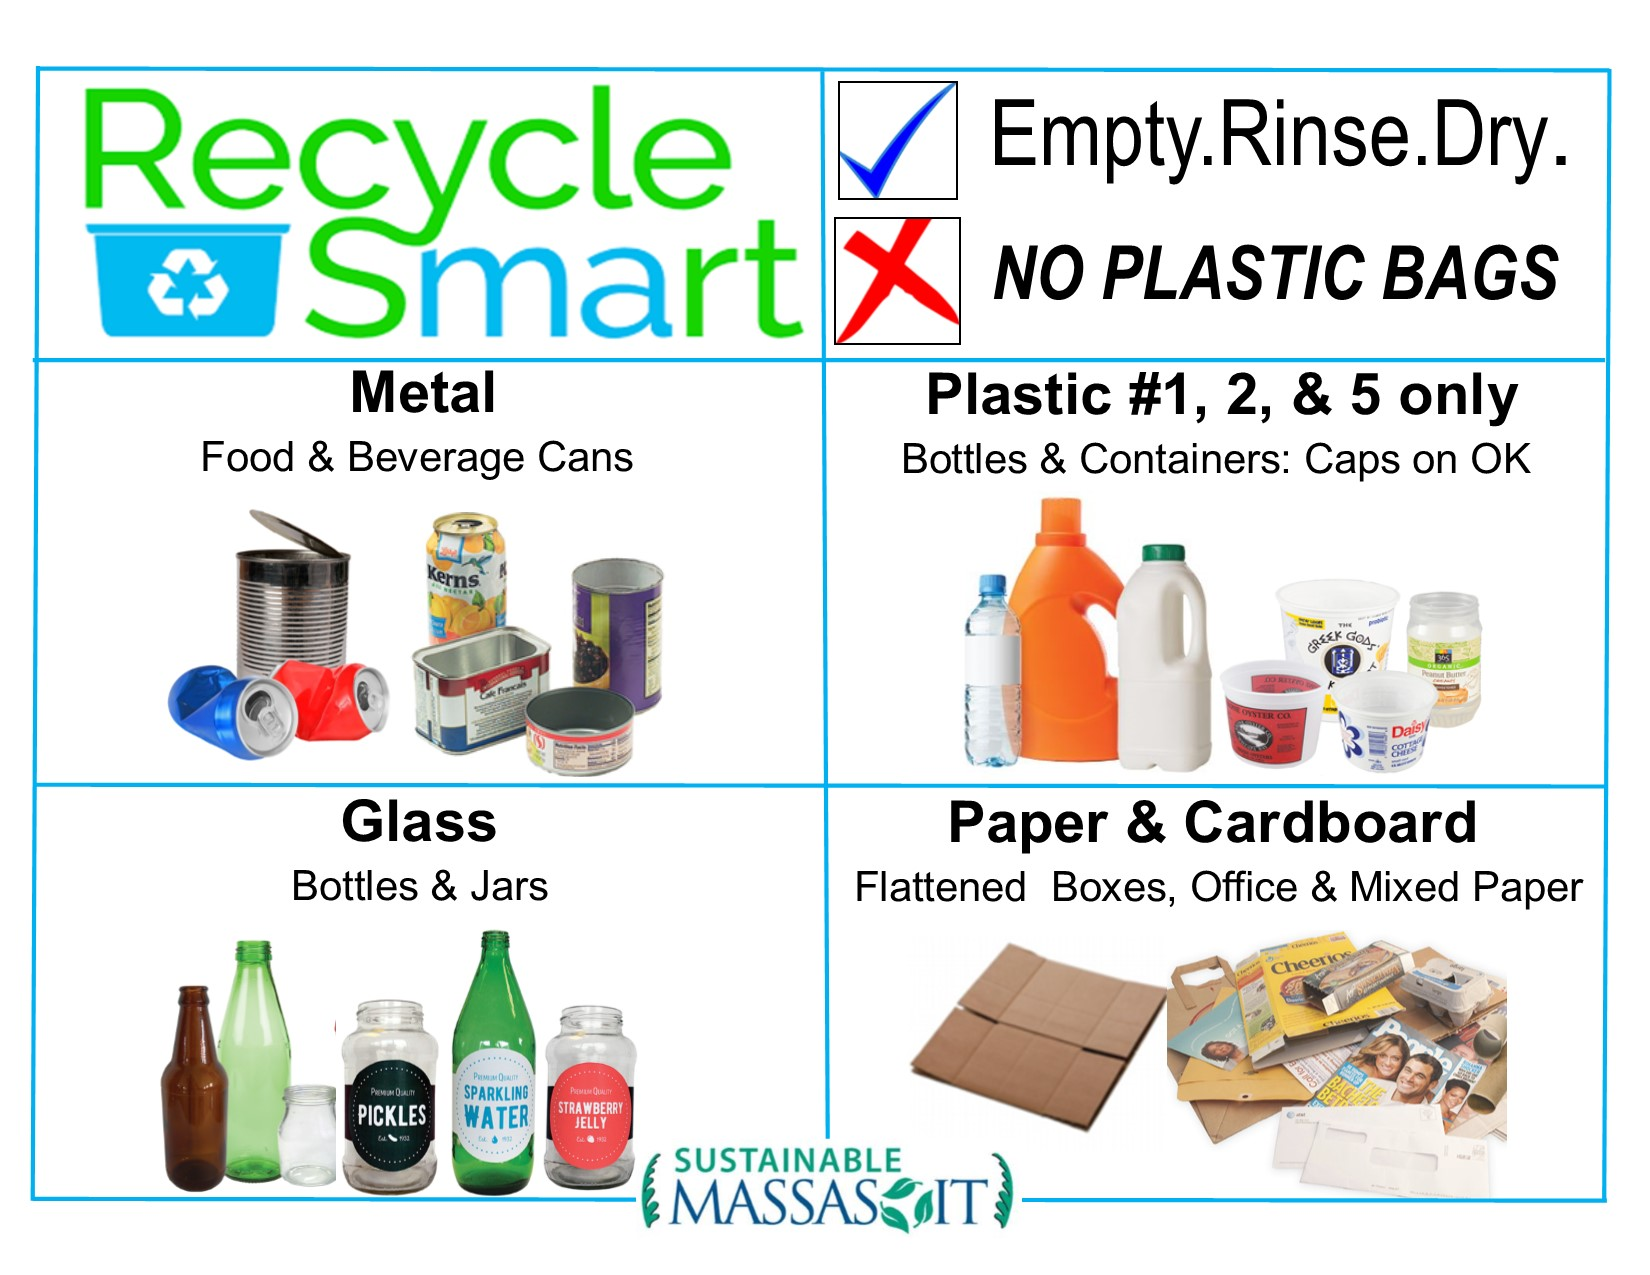 Mixed Recycling Sustainable Massasoit